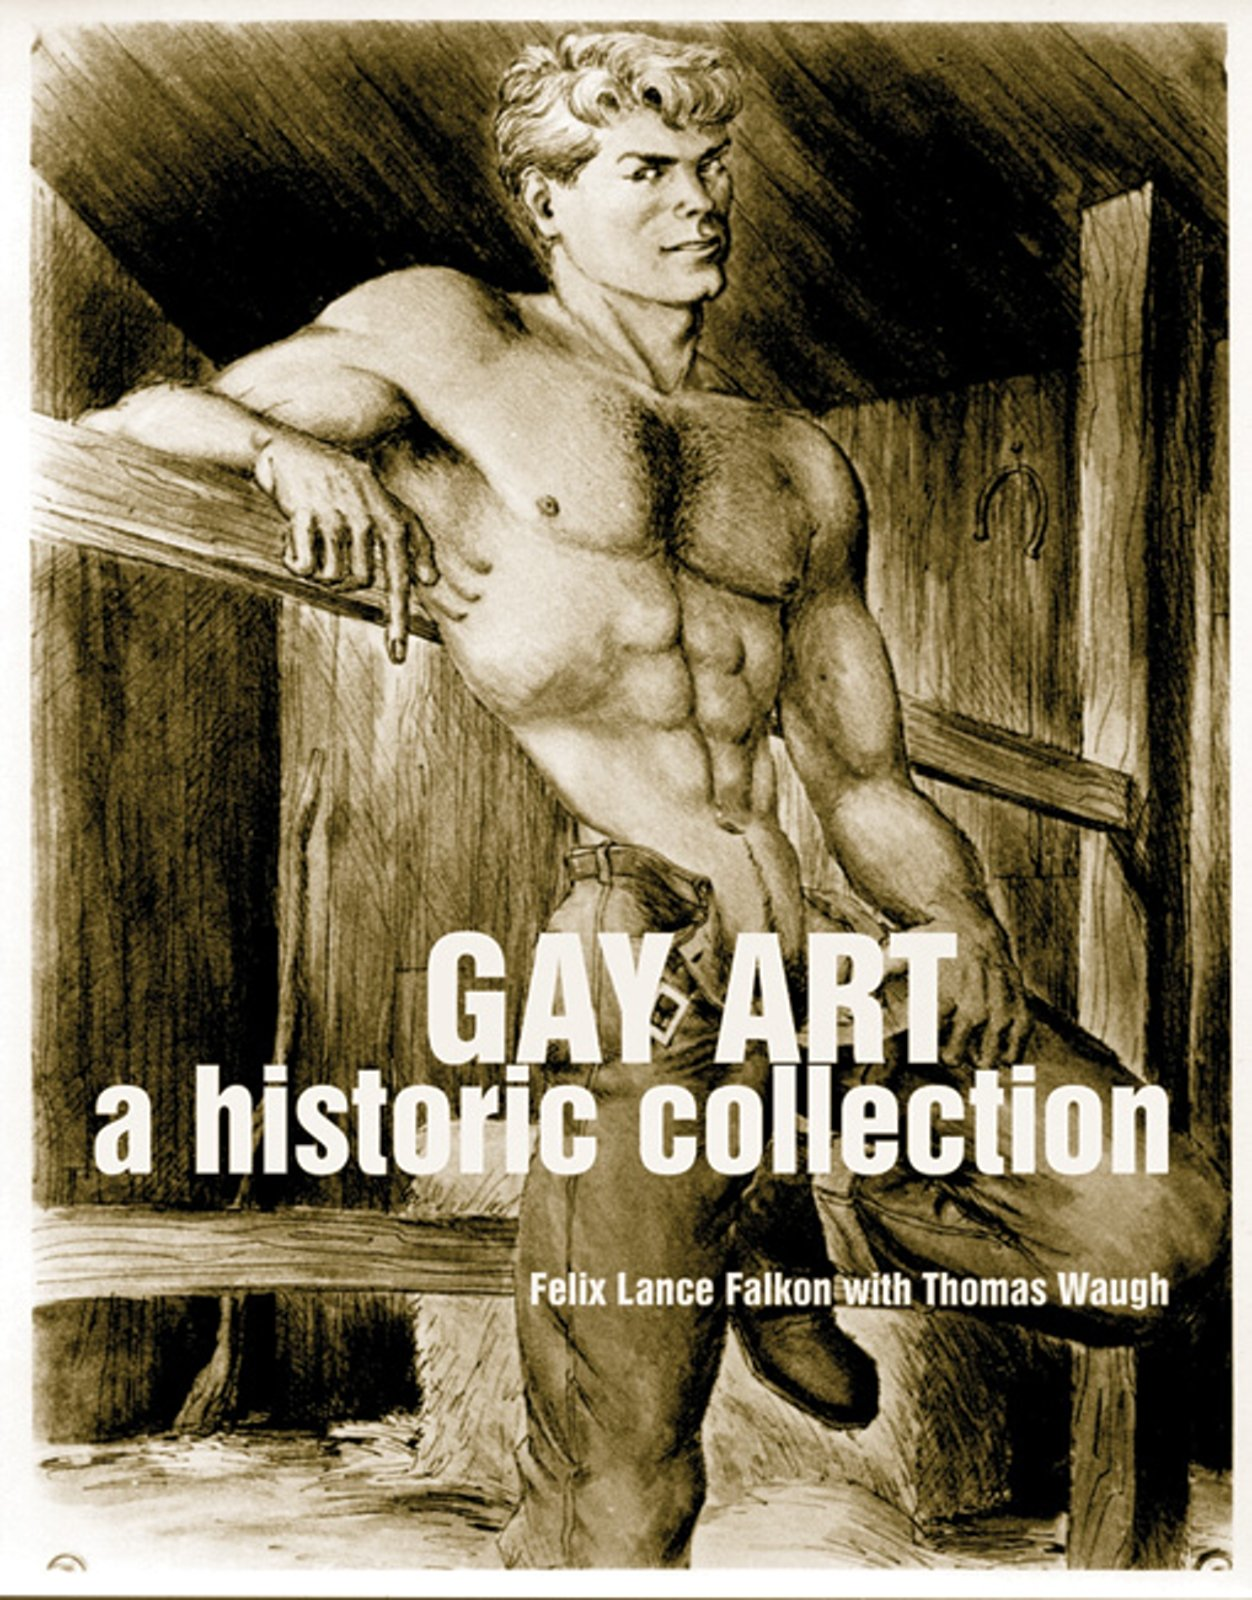 gay-art-a-historic-collection